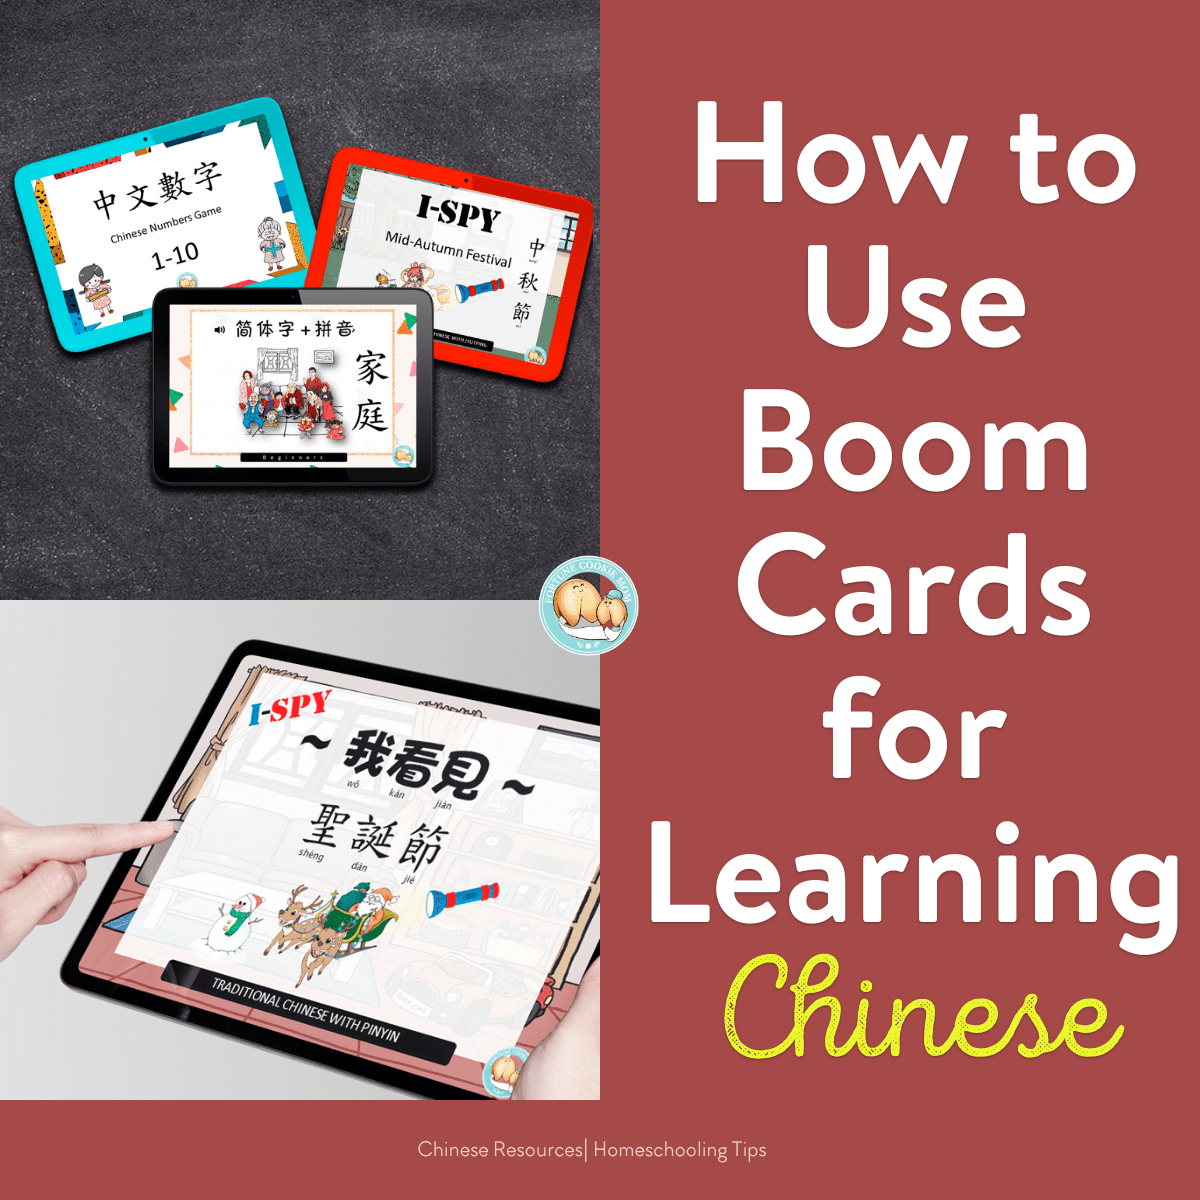 How to Use Boom Cards for Homeschooling/ Learning Chinese